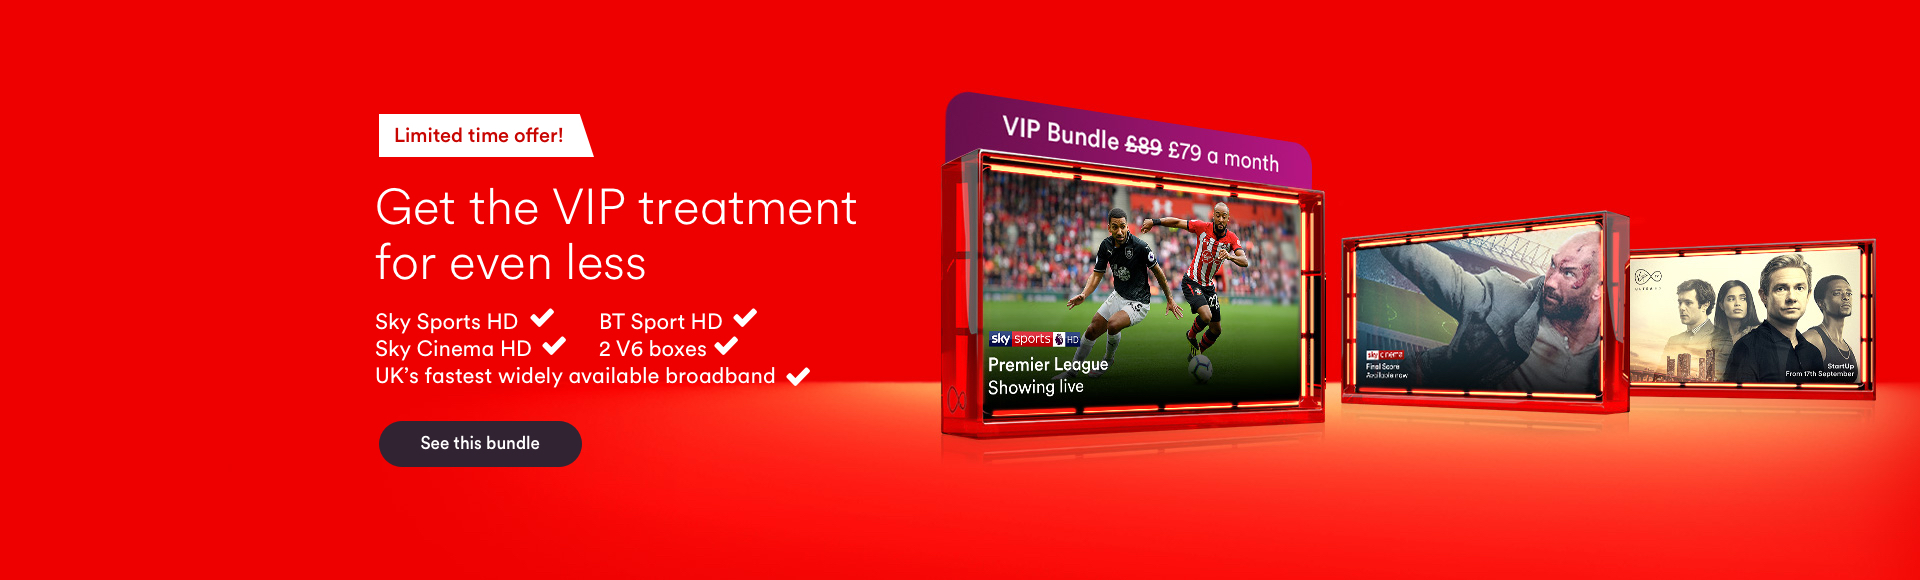 Switch to Super with Virgin Media now with ultra HD